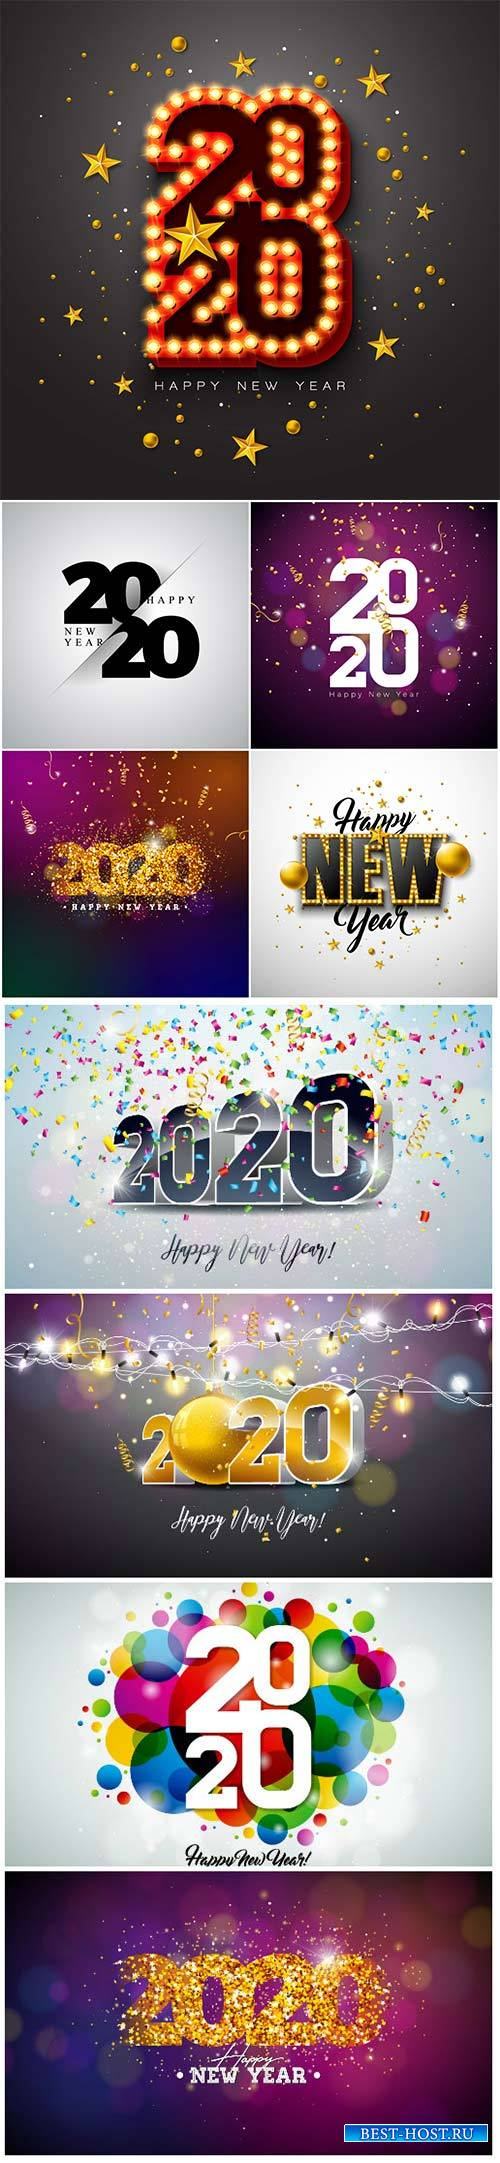 2020 Happy New Year illustration with 3d typography lettering, and